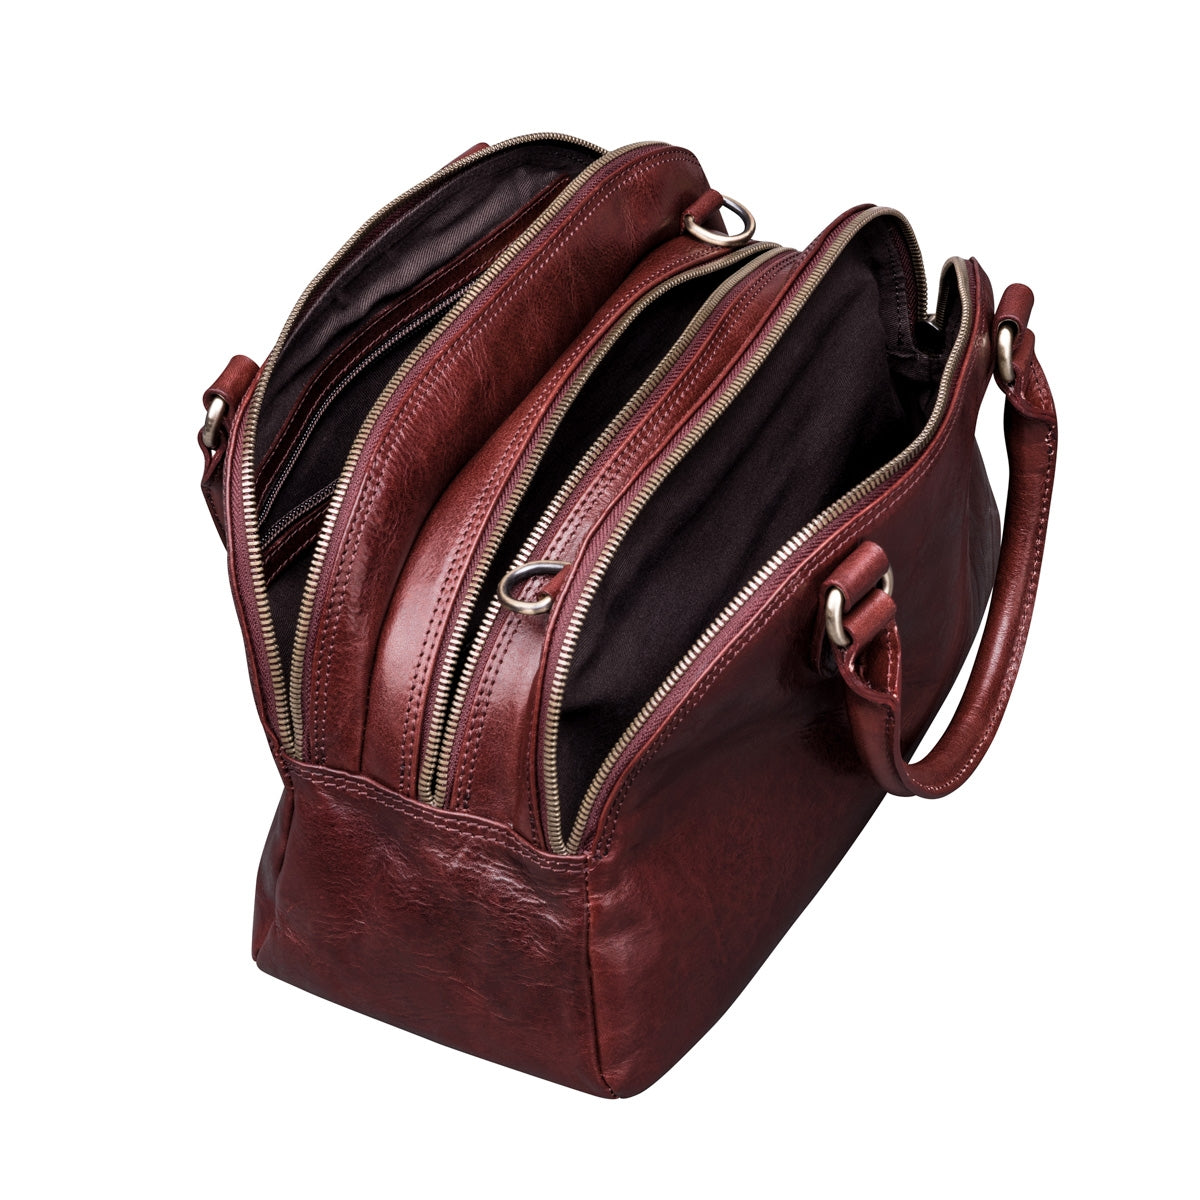 Image 4 of the 'LilianaS' Wine Leather Bowling Bag Handbag